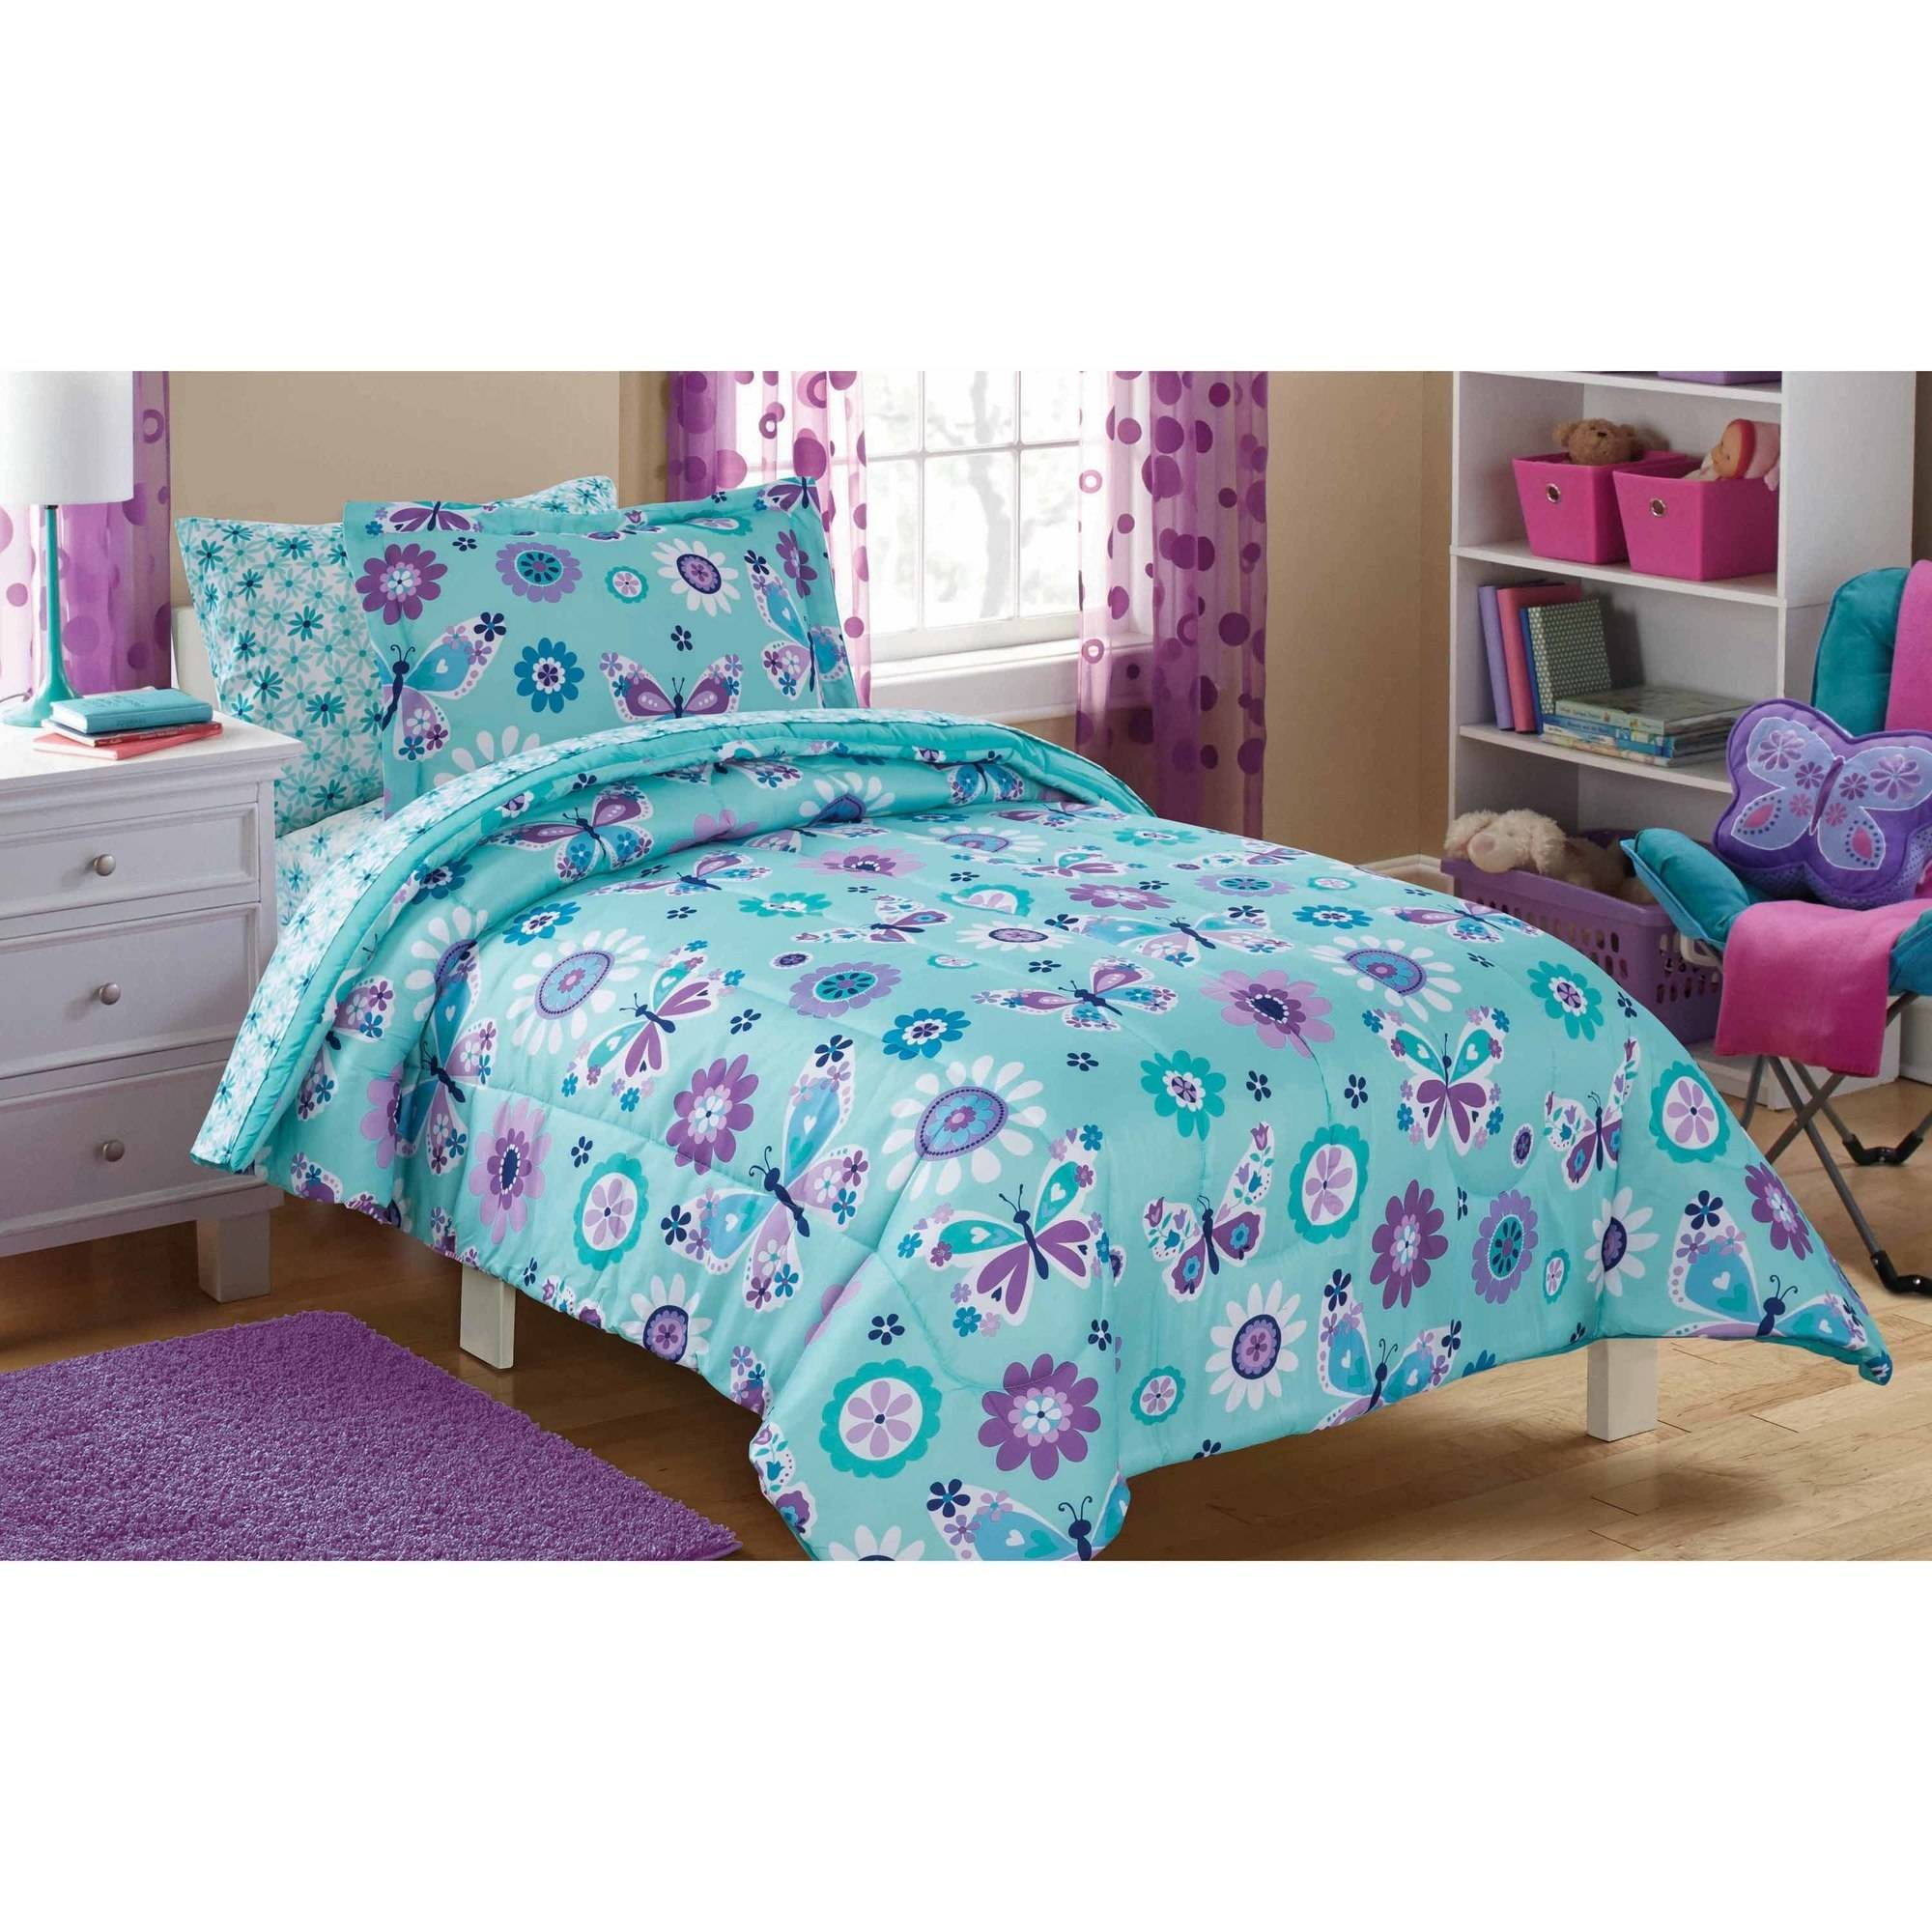 Mainstays Kids Butterfly Floral Bed In A Bag Bedding Set Walmart Com